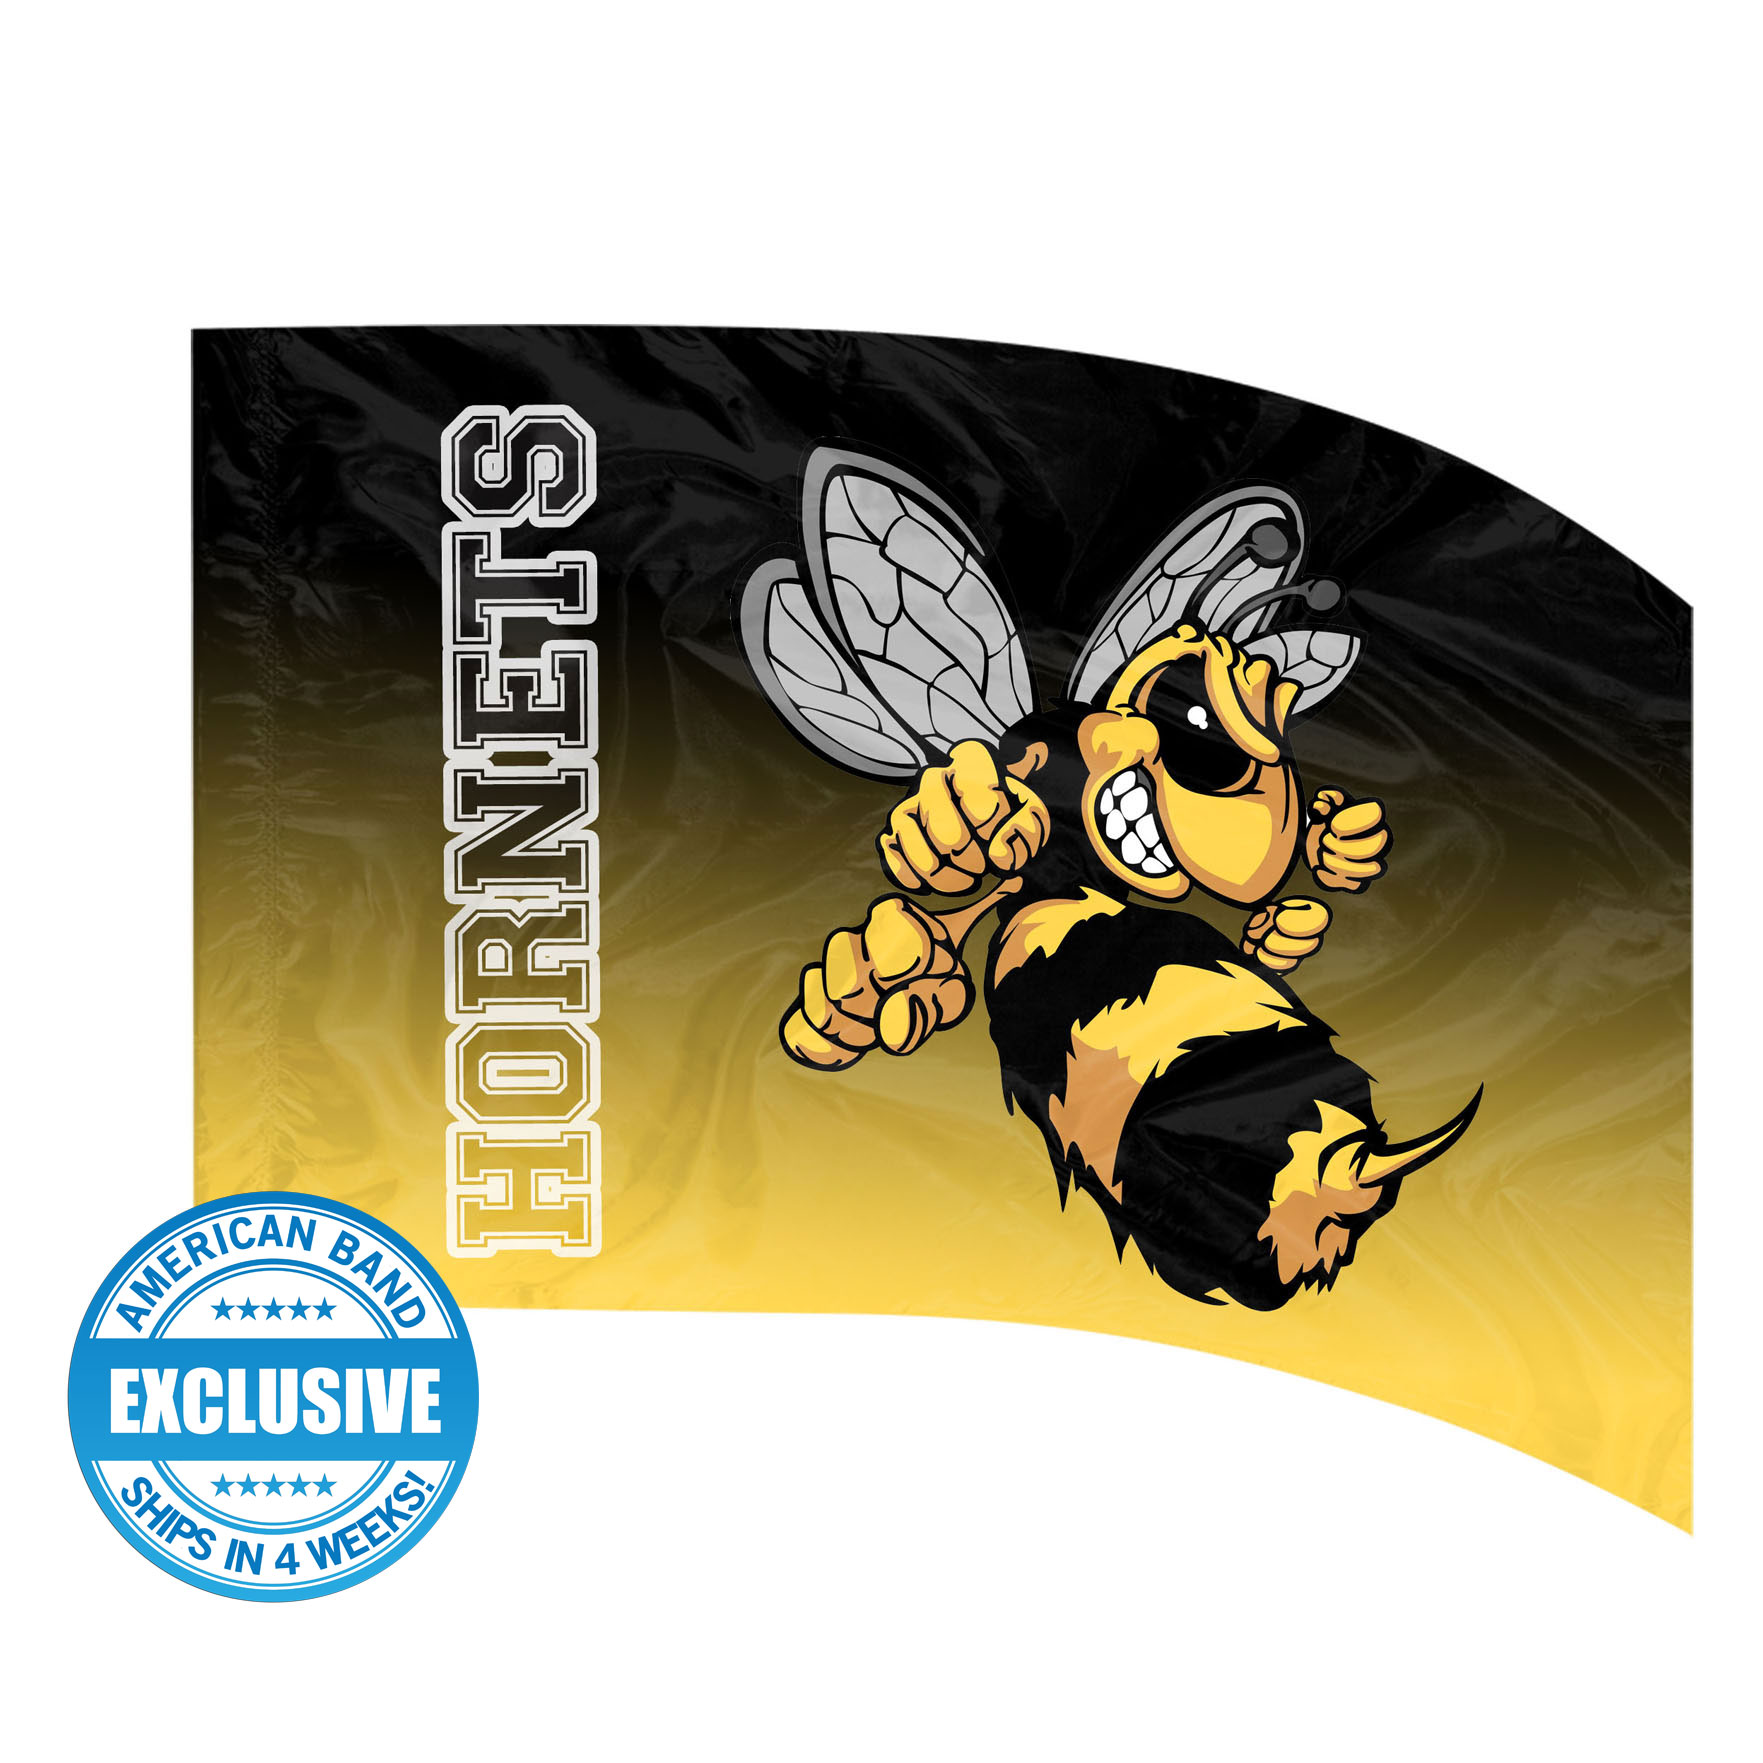 Made-to-Order Digital Mascot Flags - Hornet